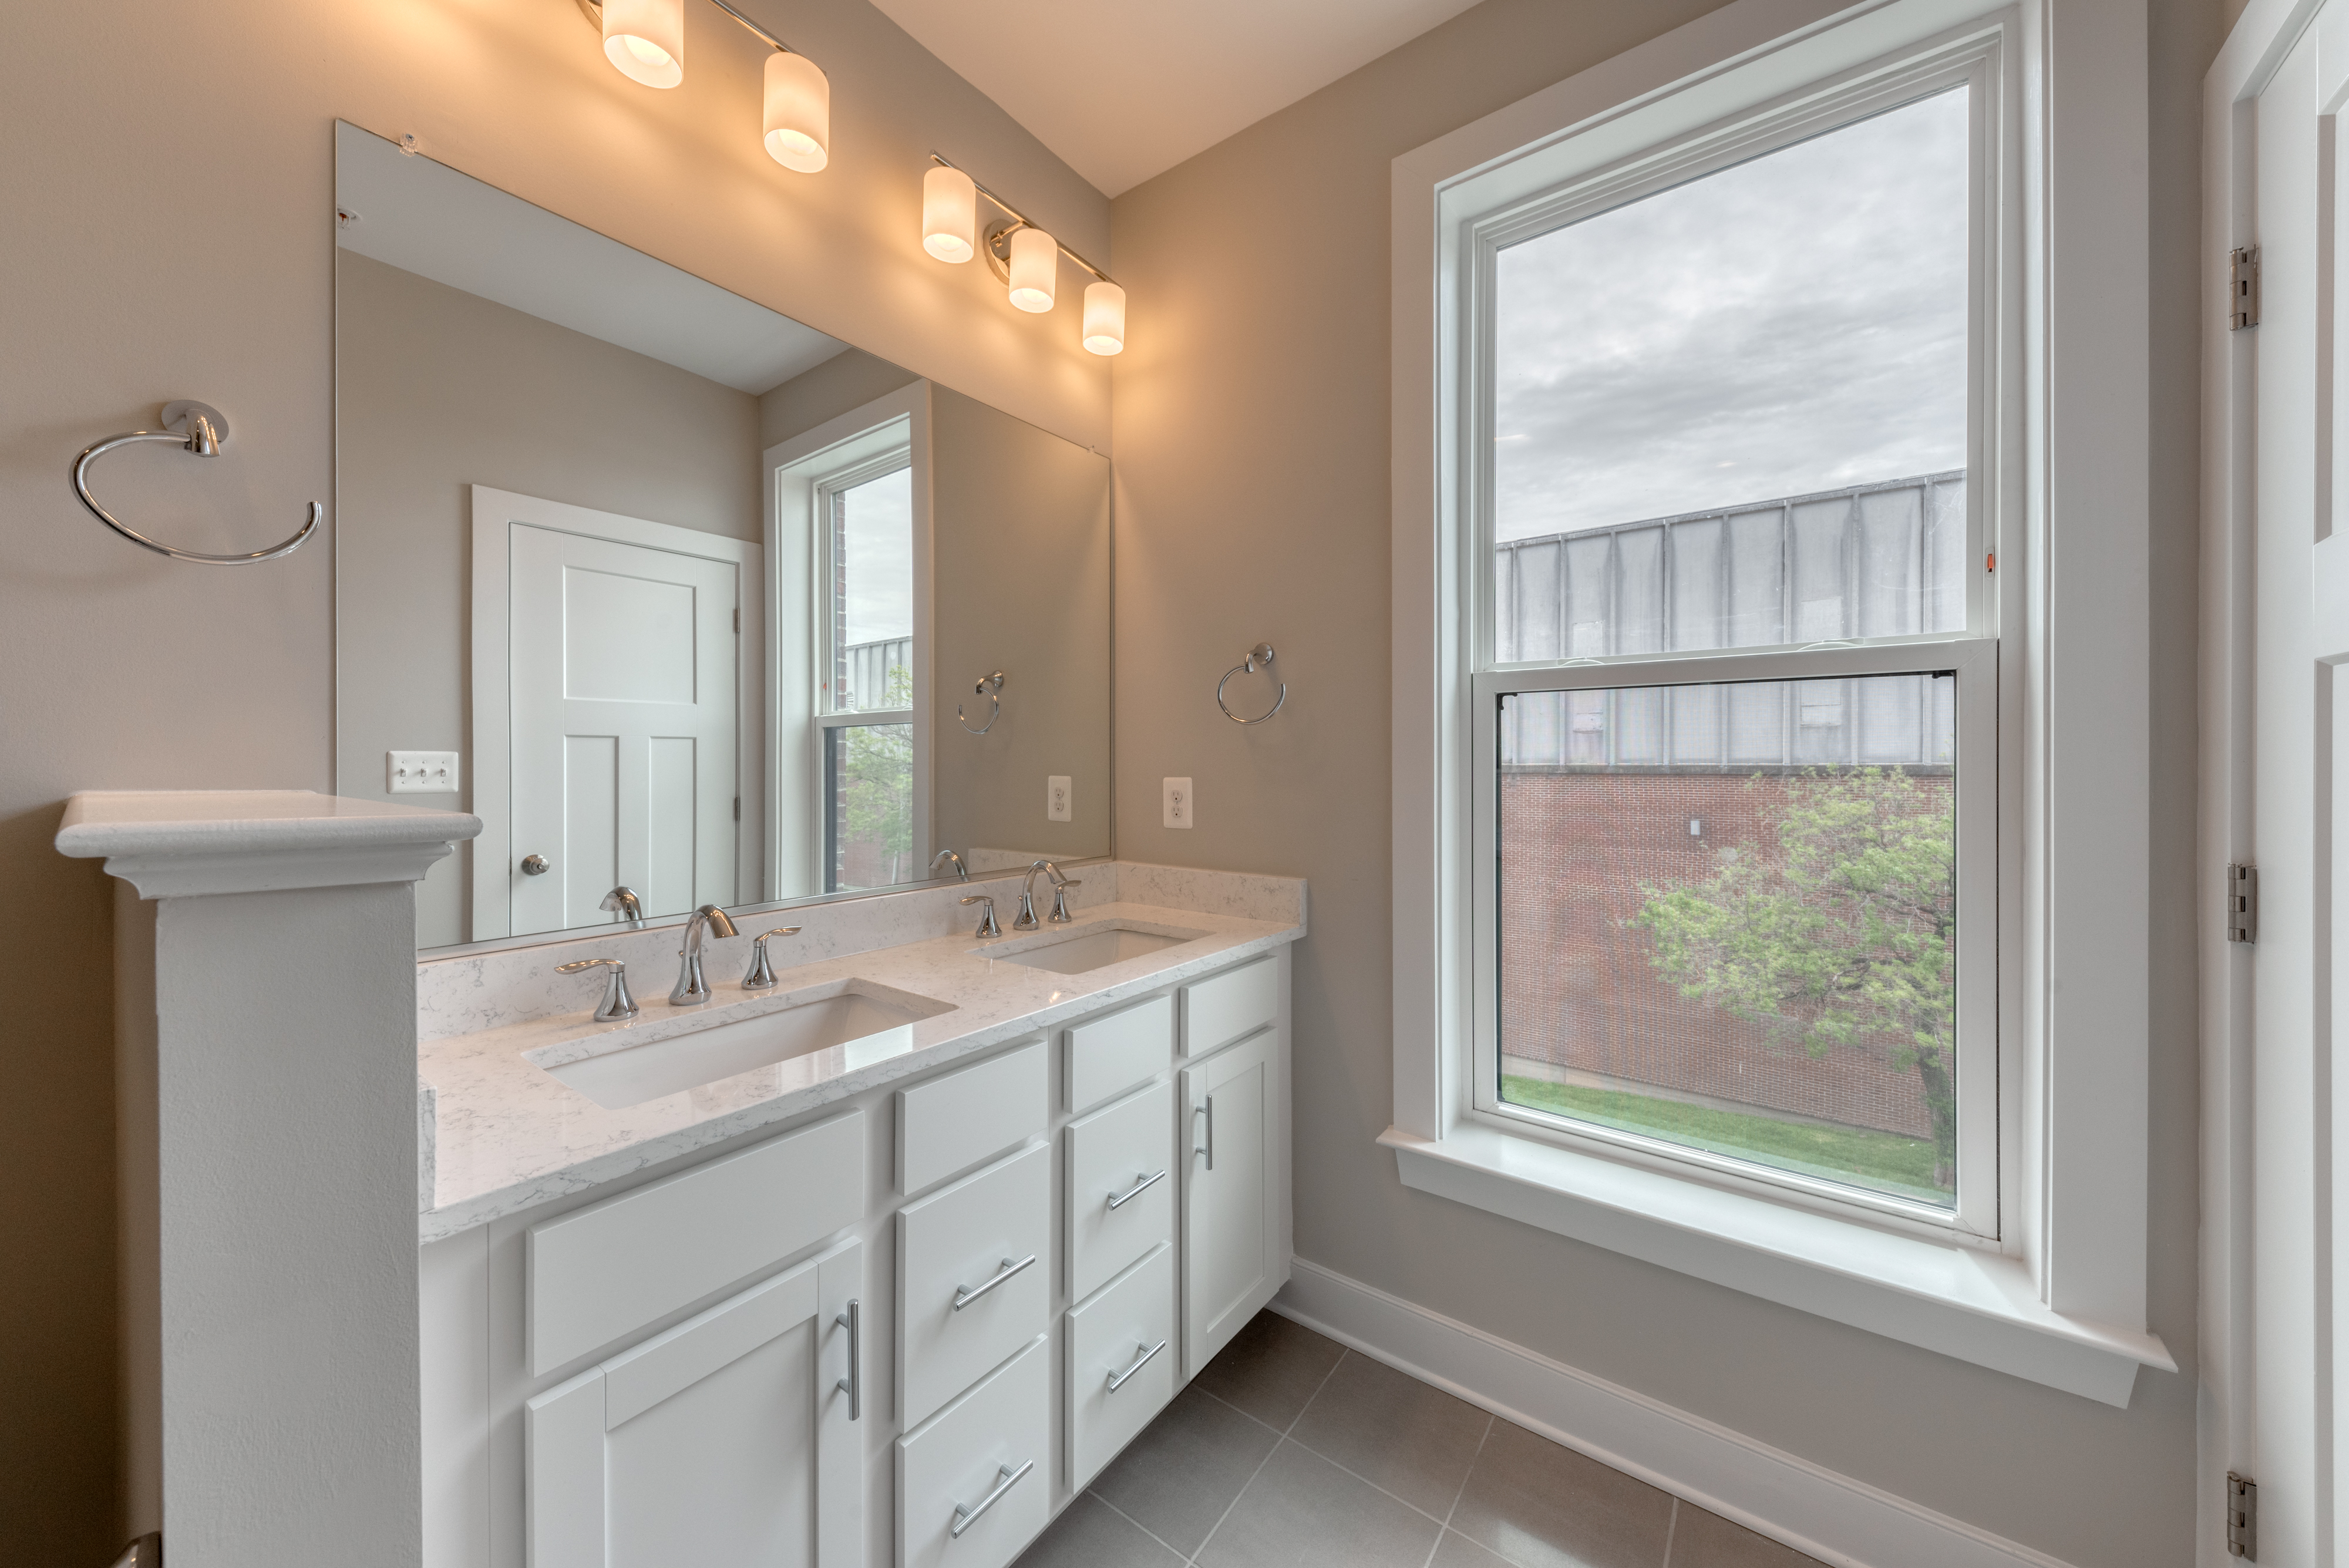 Bathroom with double vanity, window and lights